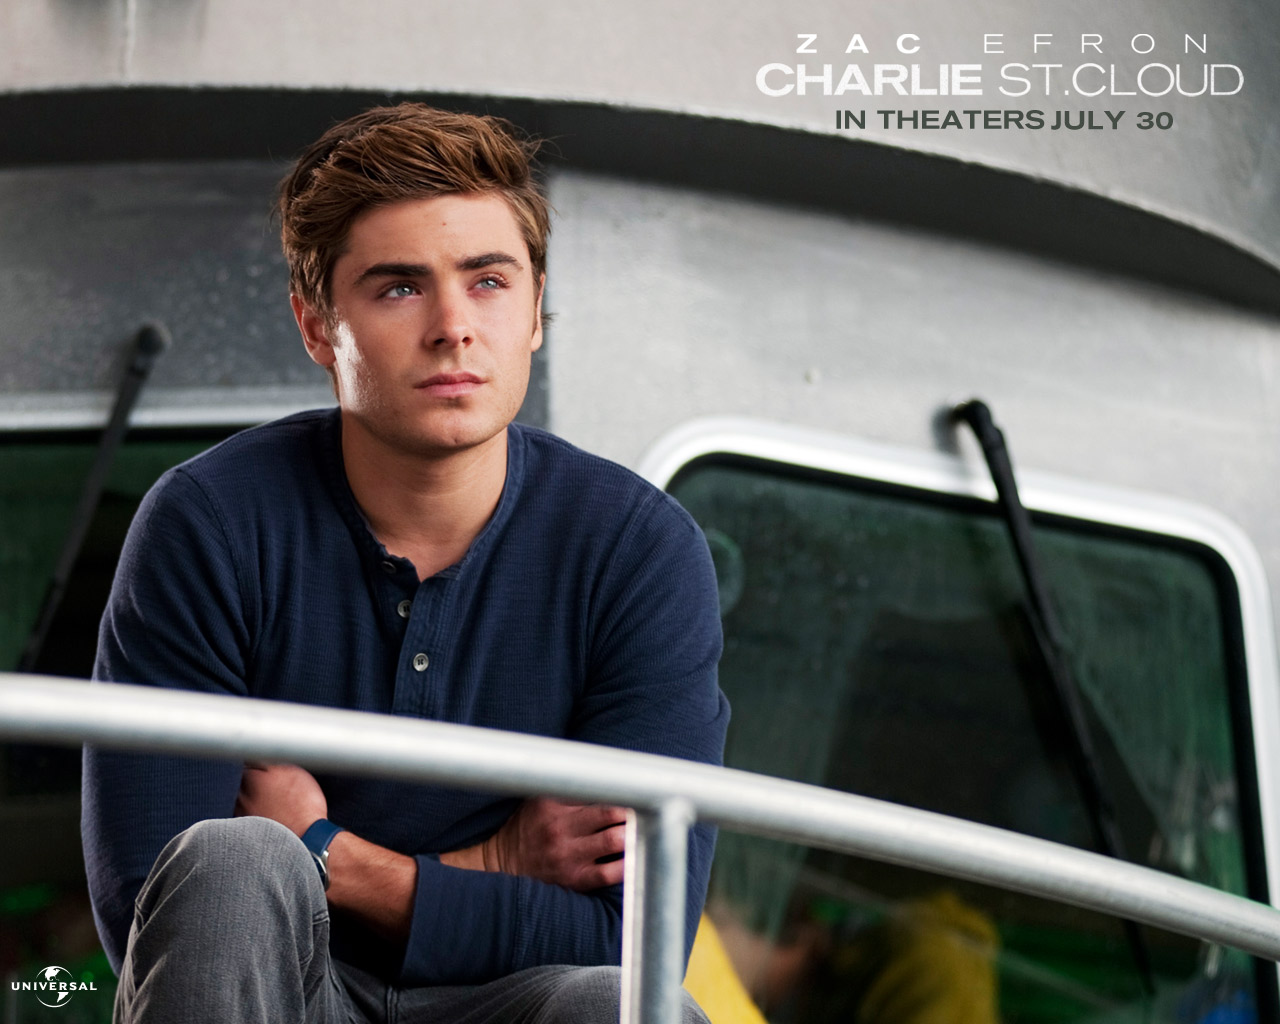 ZAC EFRON CHARLIE ST. CLOUD WALLPAPERS